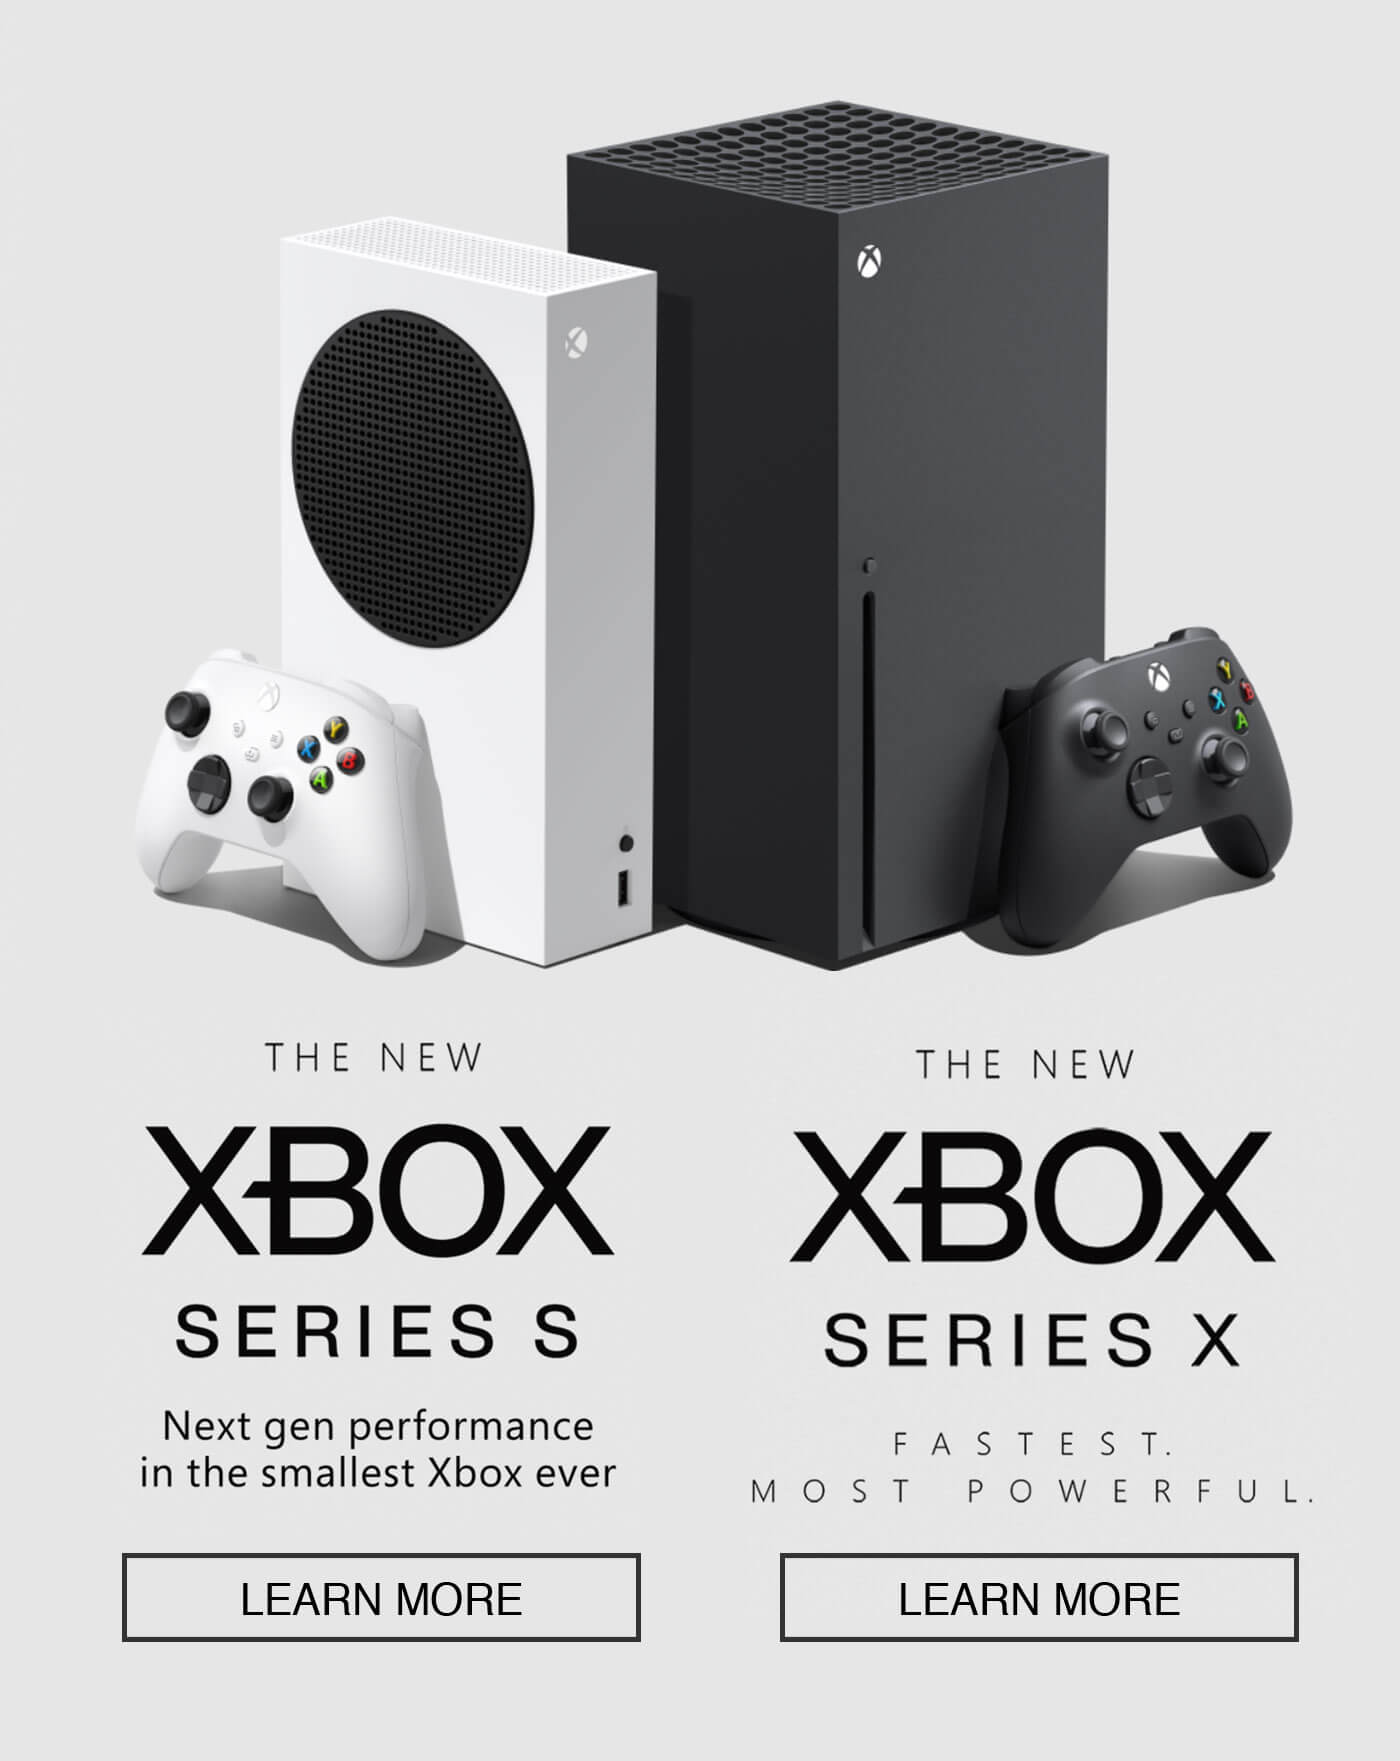 the new xbox series s, the new xbox series x